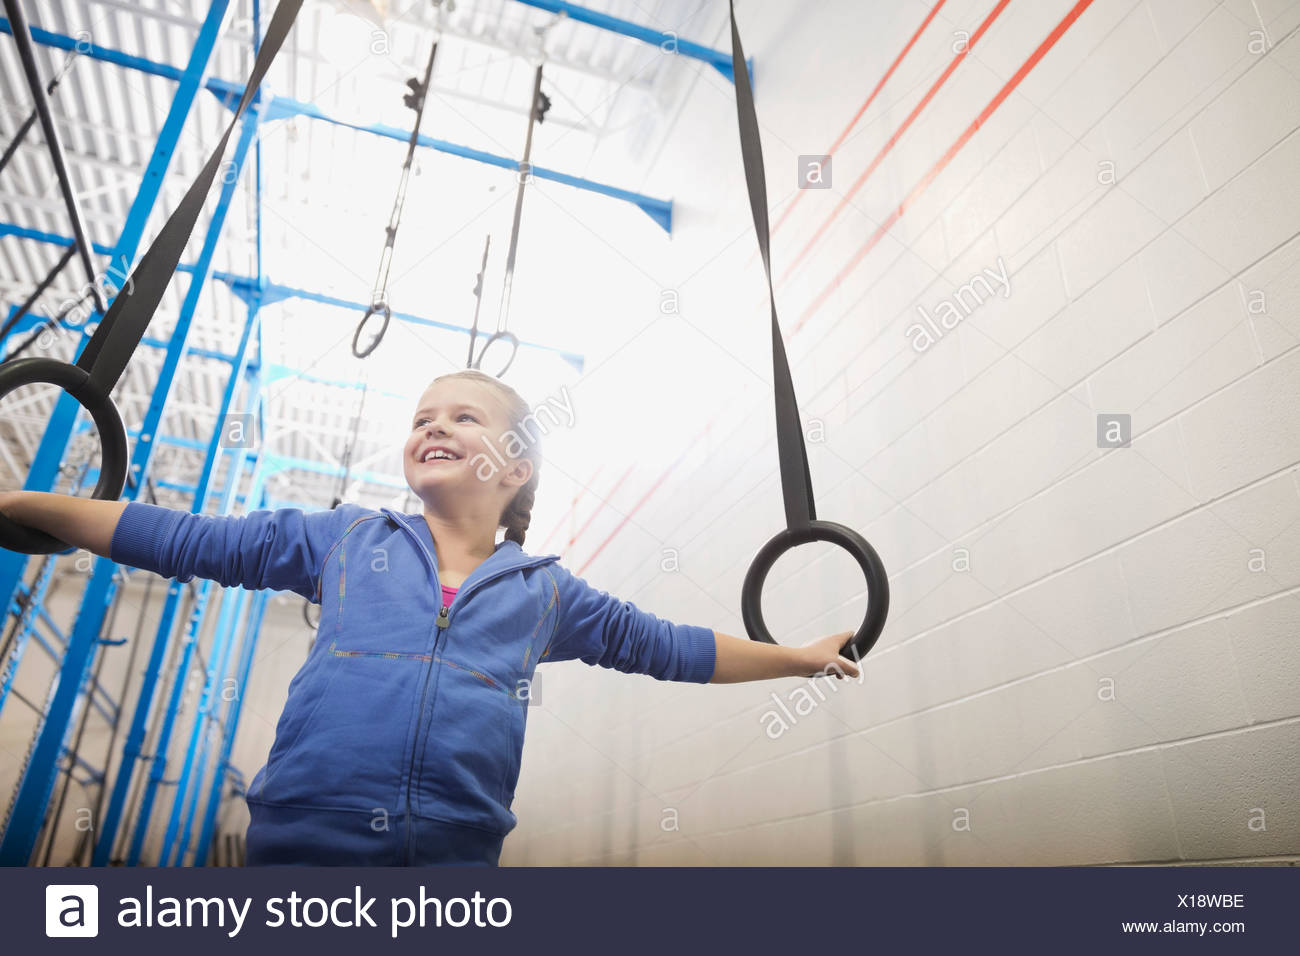 Girl holding onto gymnastic rings - Stock Image